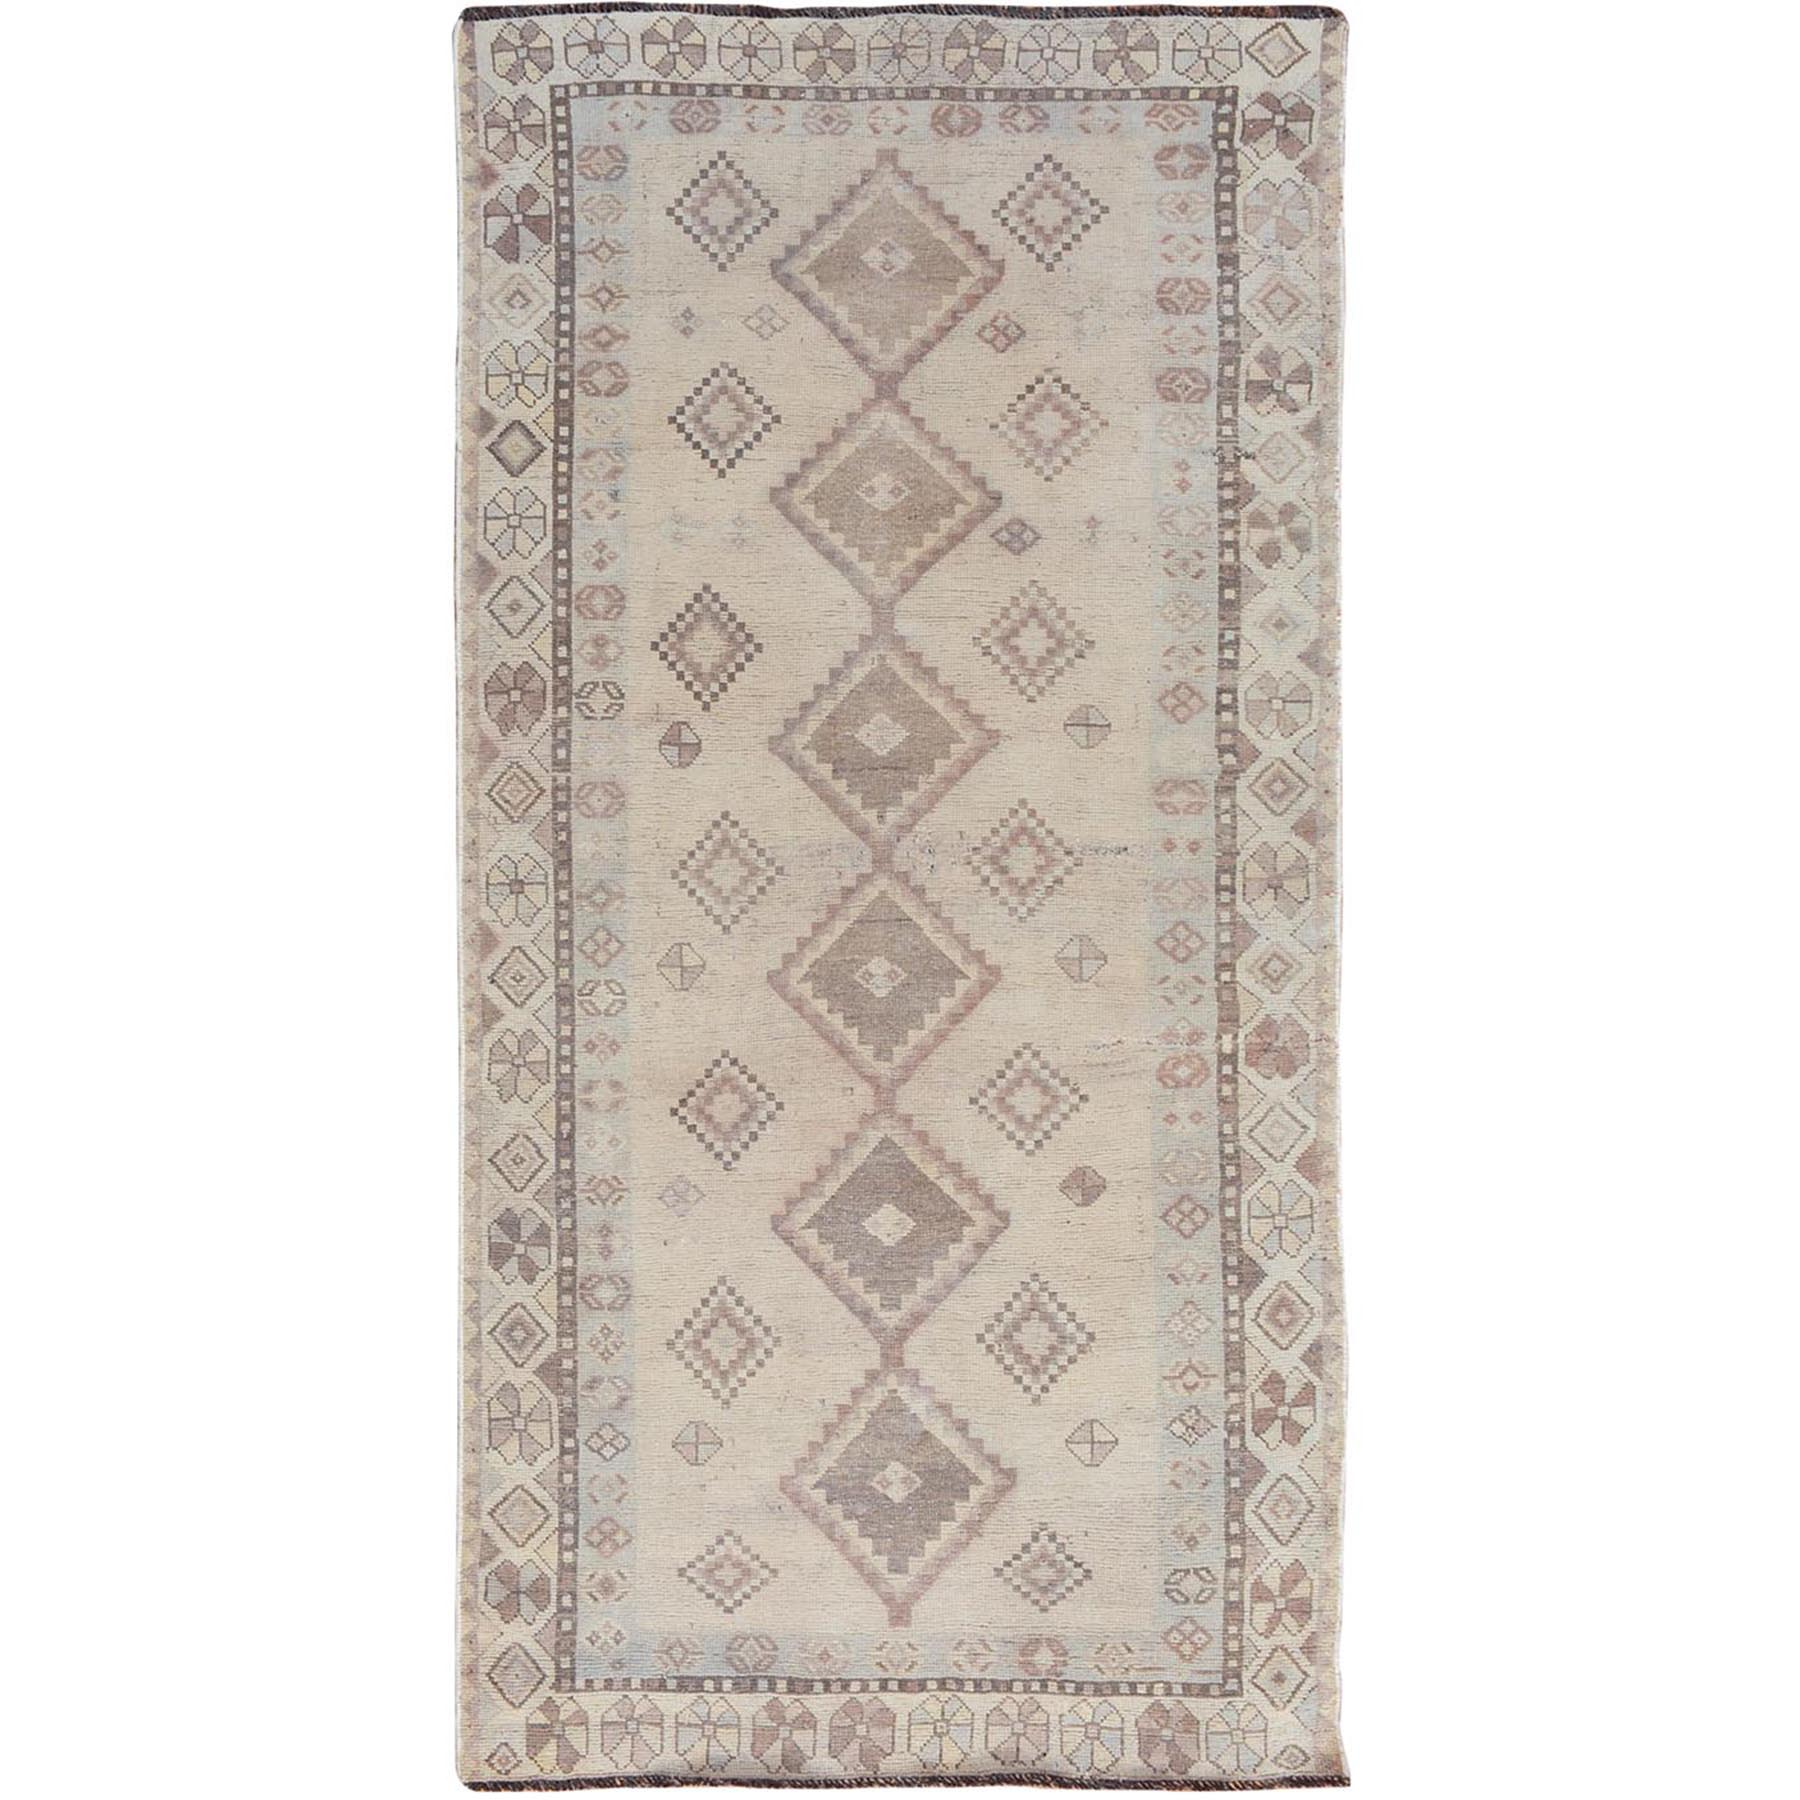 Fetneh Collection And Vintage Overdyed Collection Hand Knotted Grey Rug No: 01114420